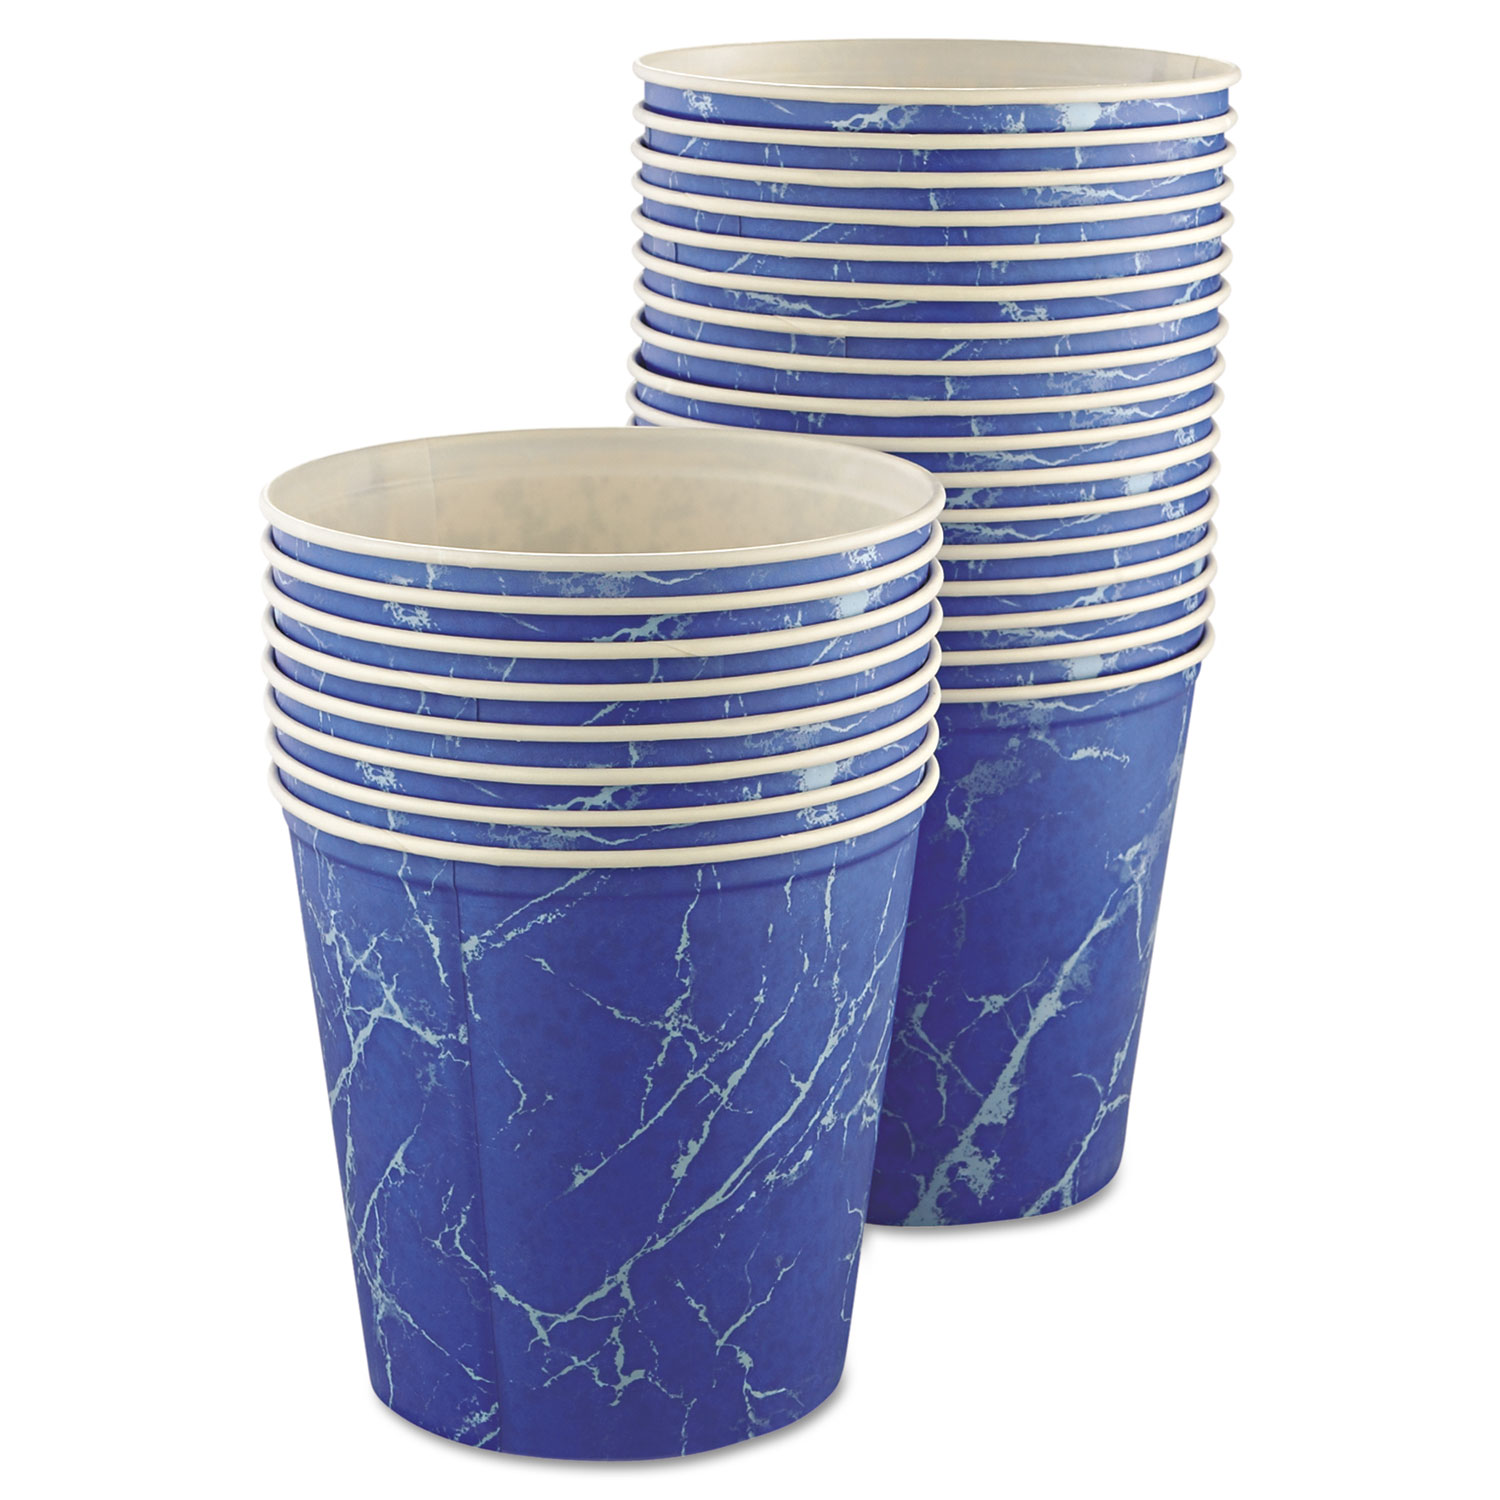 Double Wrapped Paper Bucket, Waxed, Blue Marble, 165oz, 100/Carton